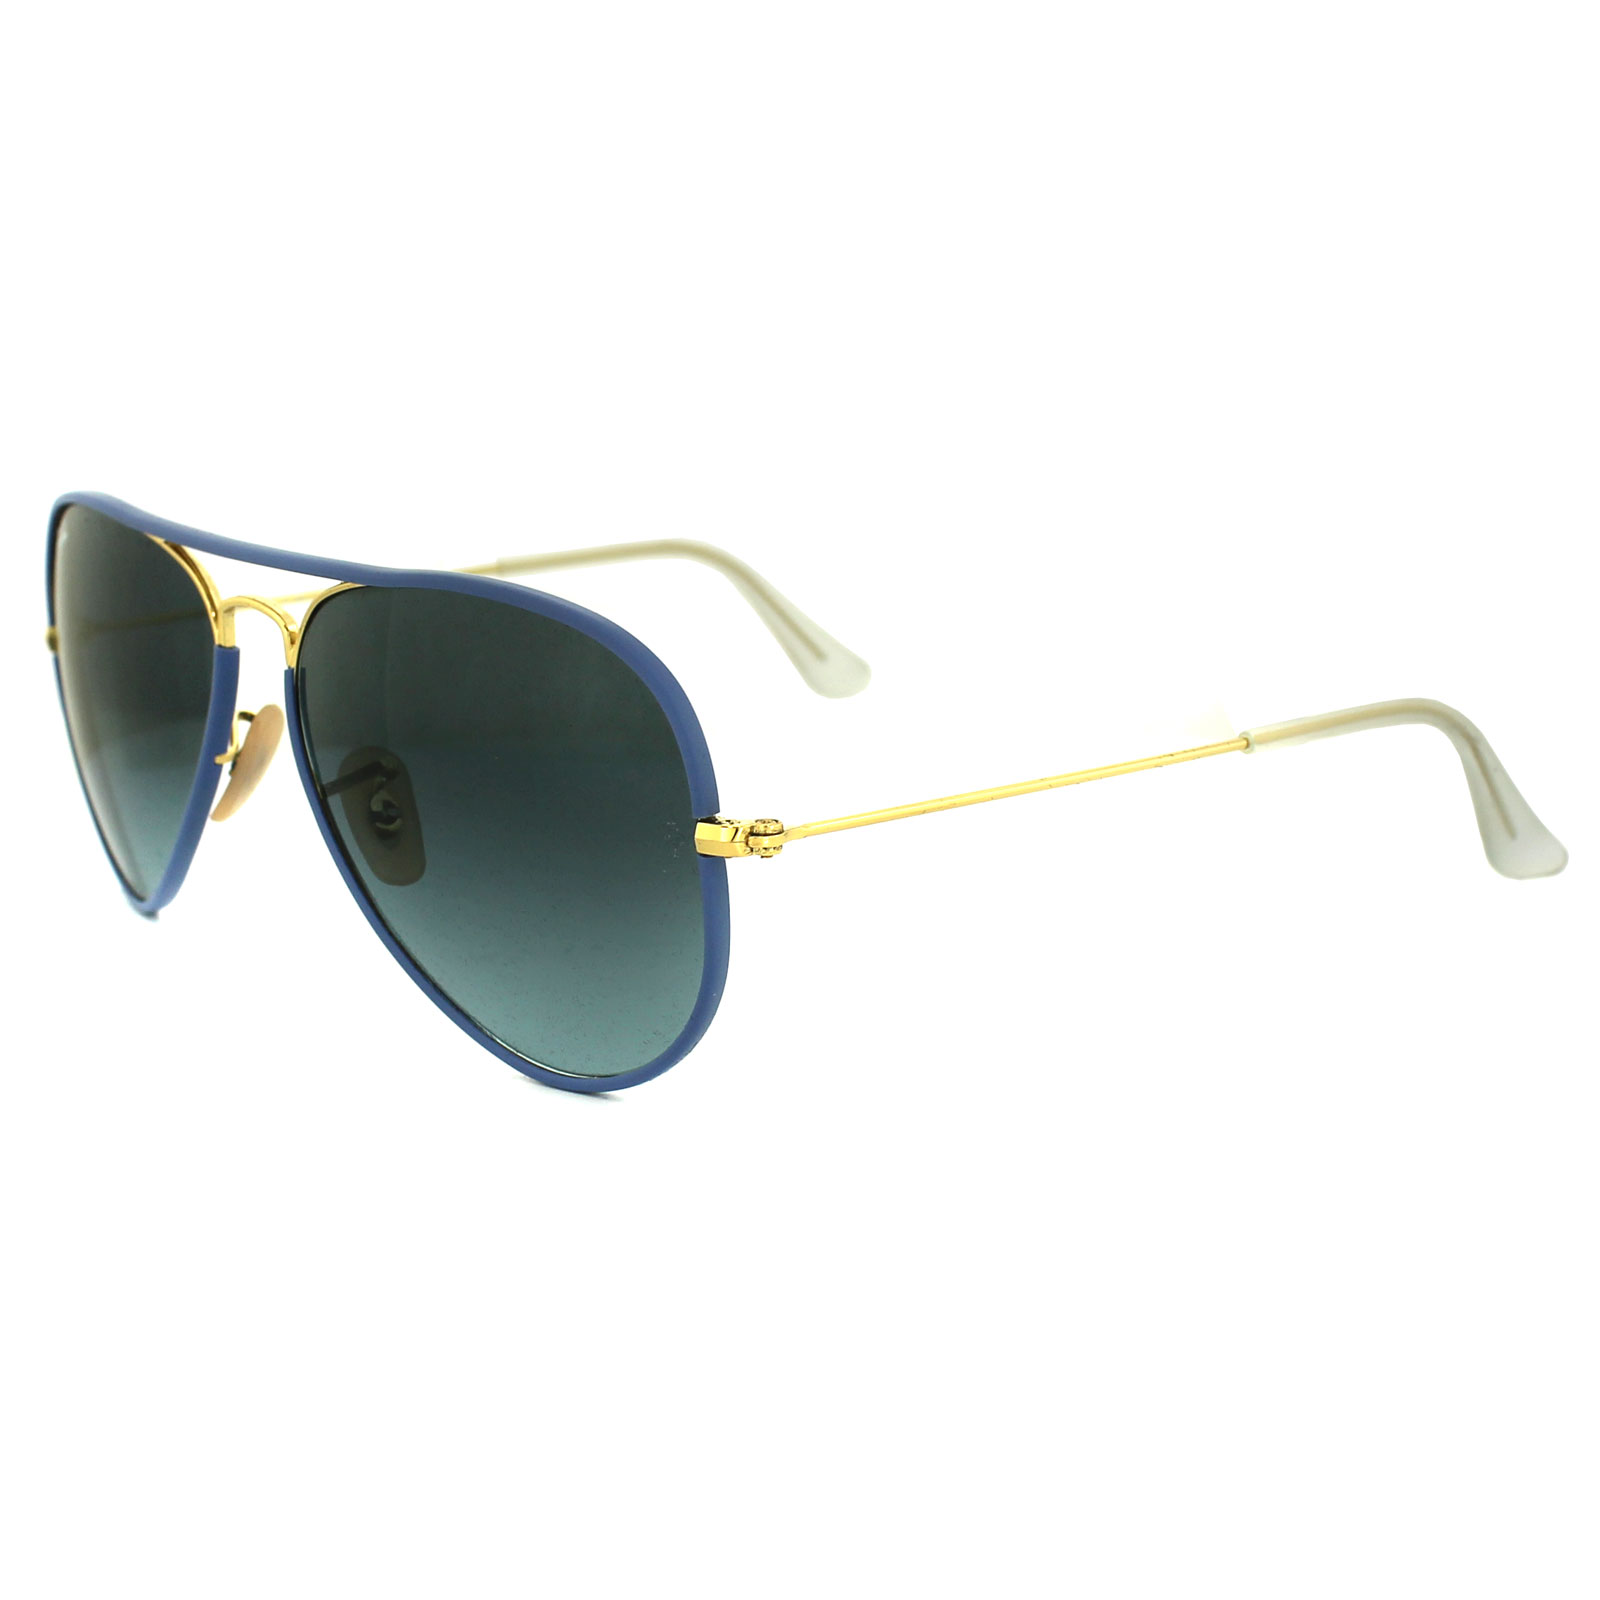 73e5c97010c Sentinel Ray-Ban Sunglasses Aviator Full Colour 3025JM 001 4M Gold   Blue  Blue Small